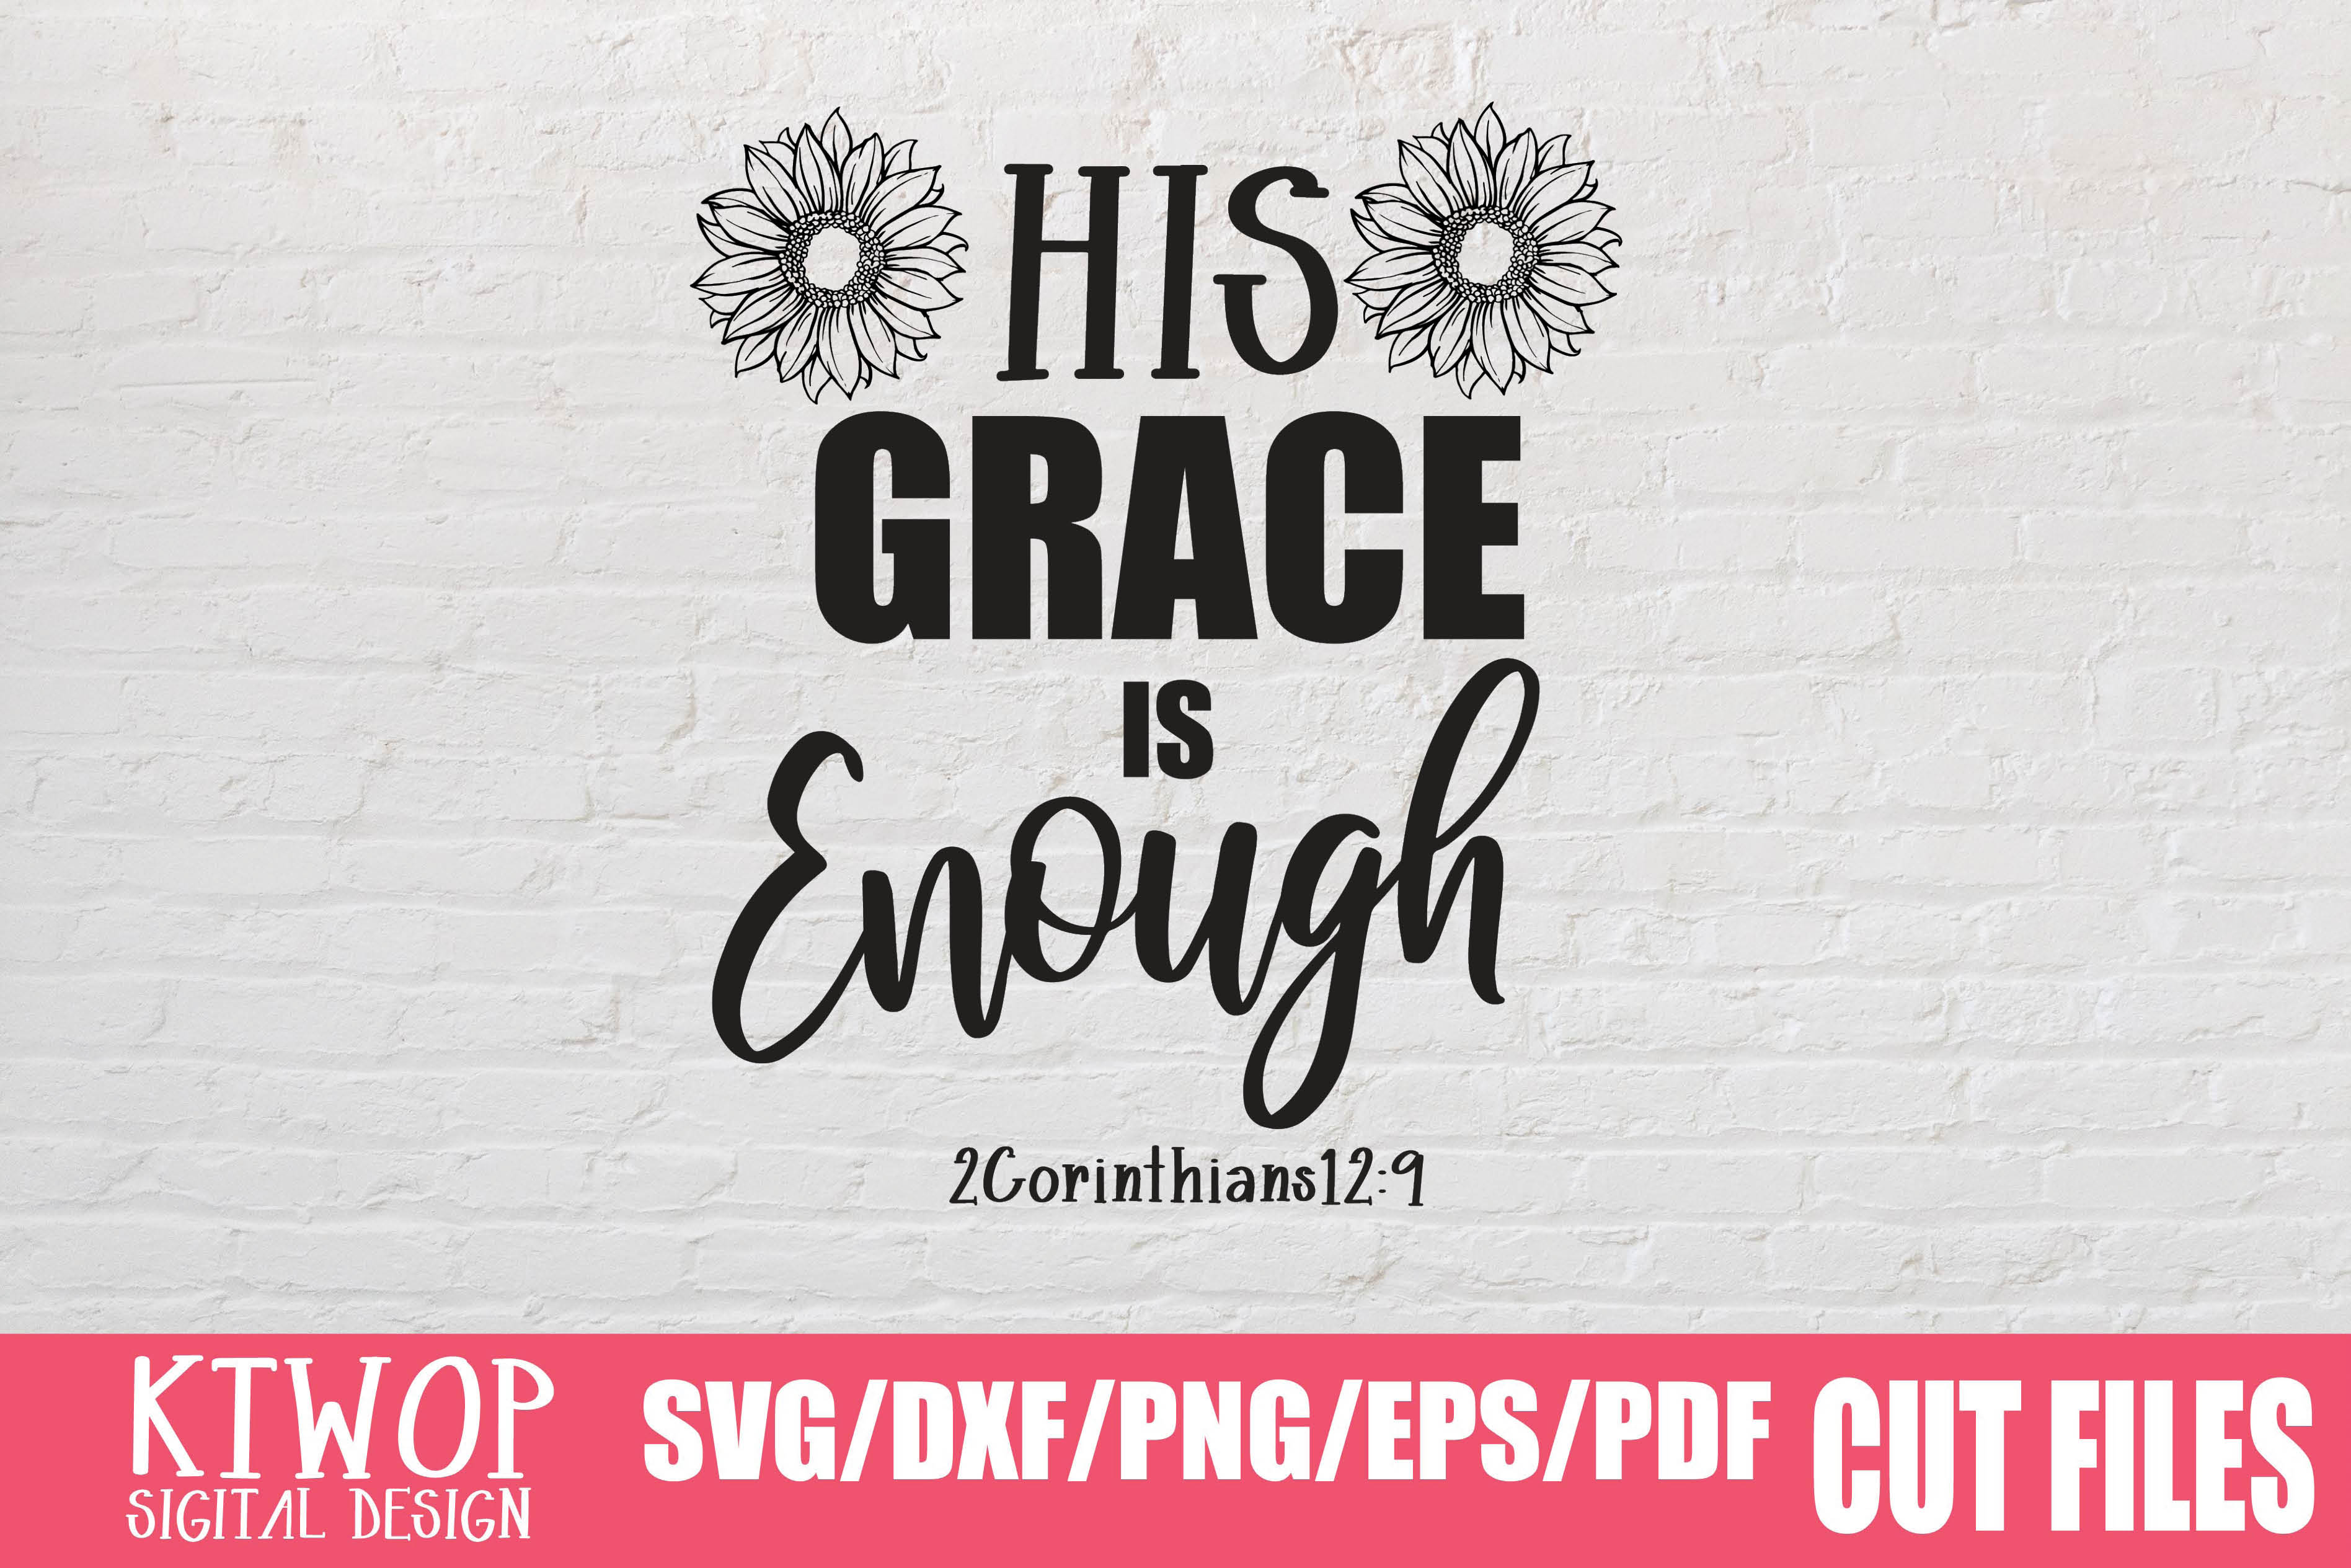 Download Free His Grace Is Enough Graphic By Ktwop Creative Fabrica for Cricut Explore, Silhouette and other cutting machines.